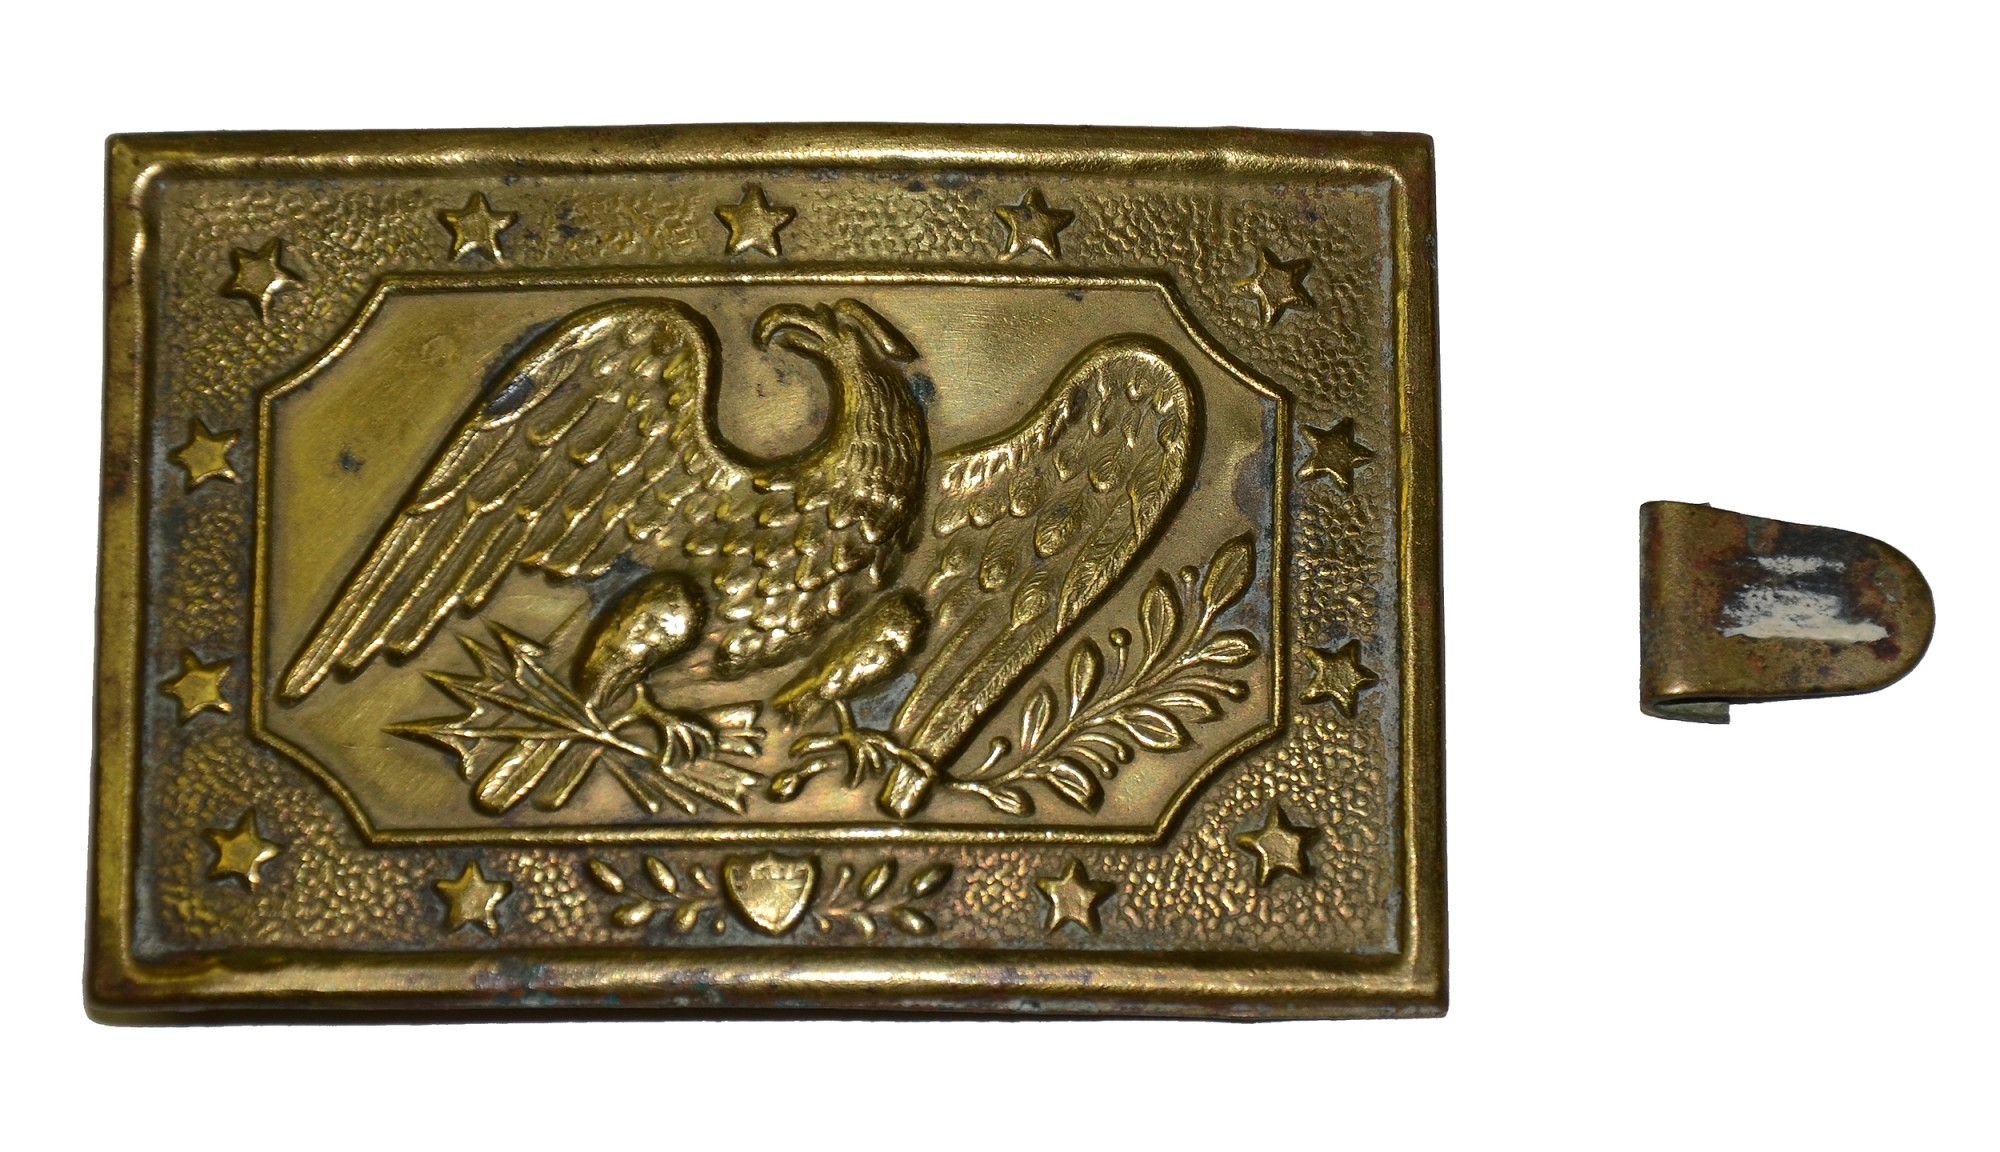 MILITIA EAGLE SWORD PLATE FROM THE GETTYSBURG ROSENSTEEL FAMILY COLLECTION